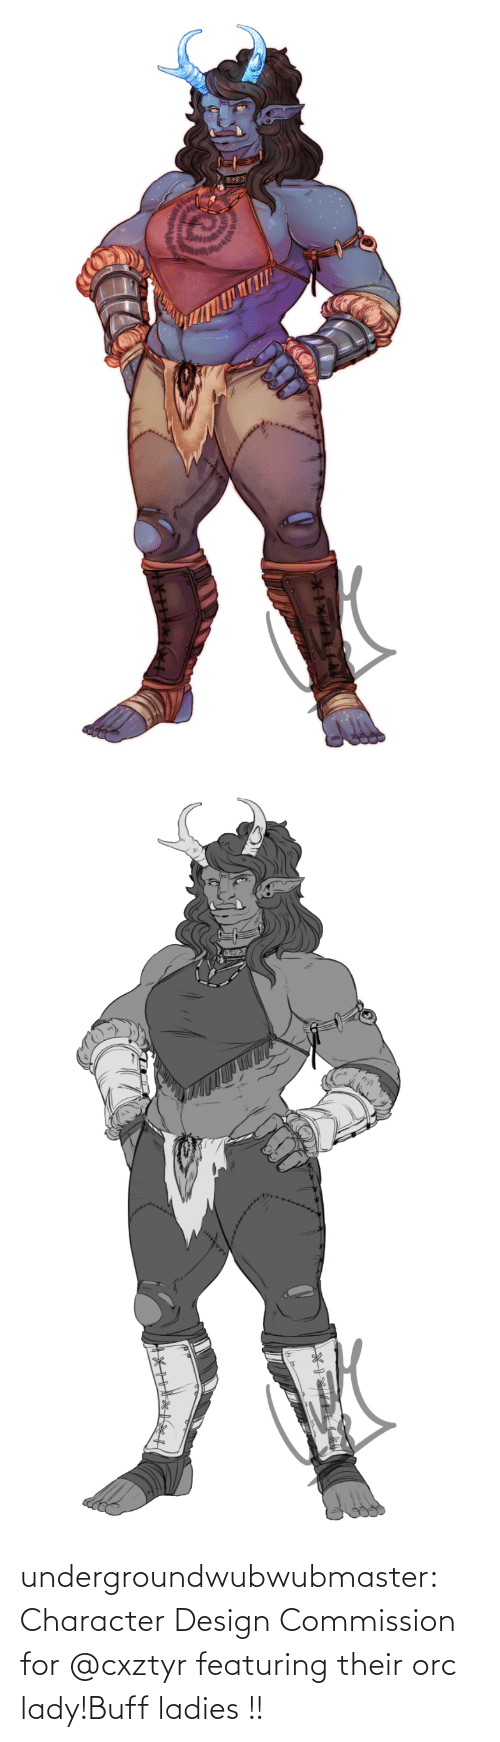 Commission: undergroundwubwubmaster:  Character Design Commission for @cxztyr featuring their orc lady!Buff ladies !!